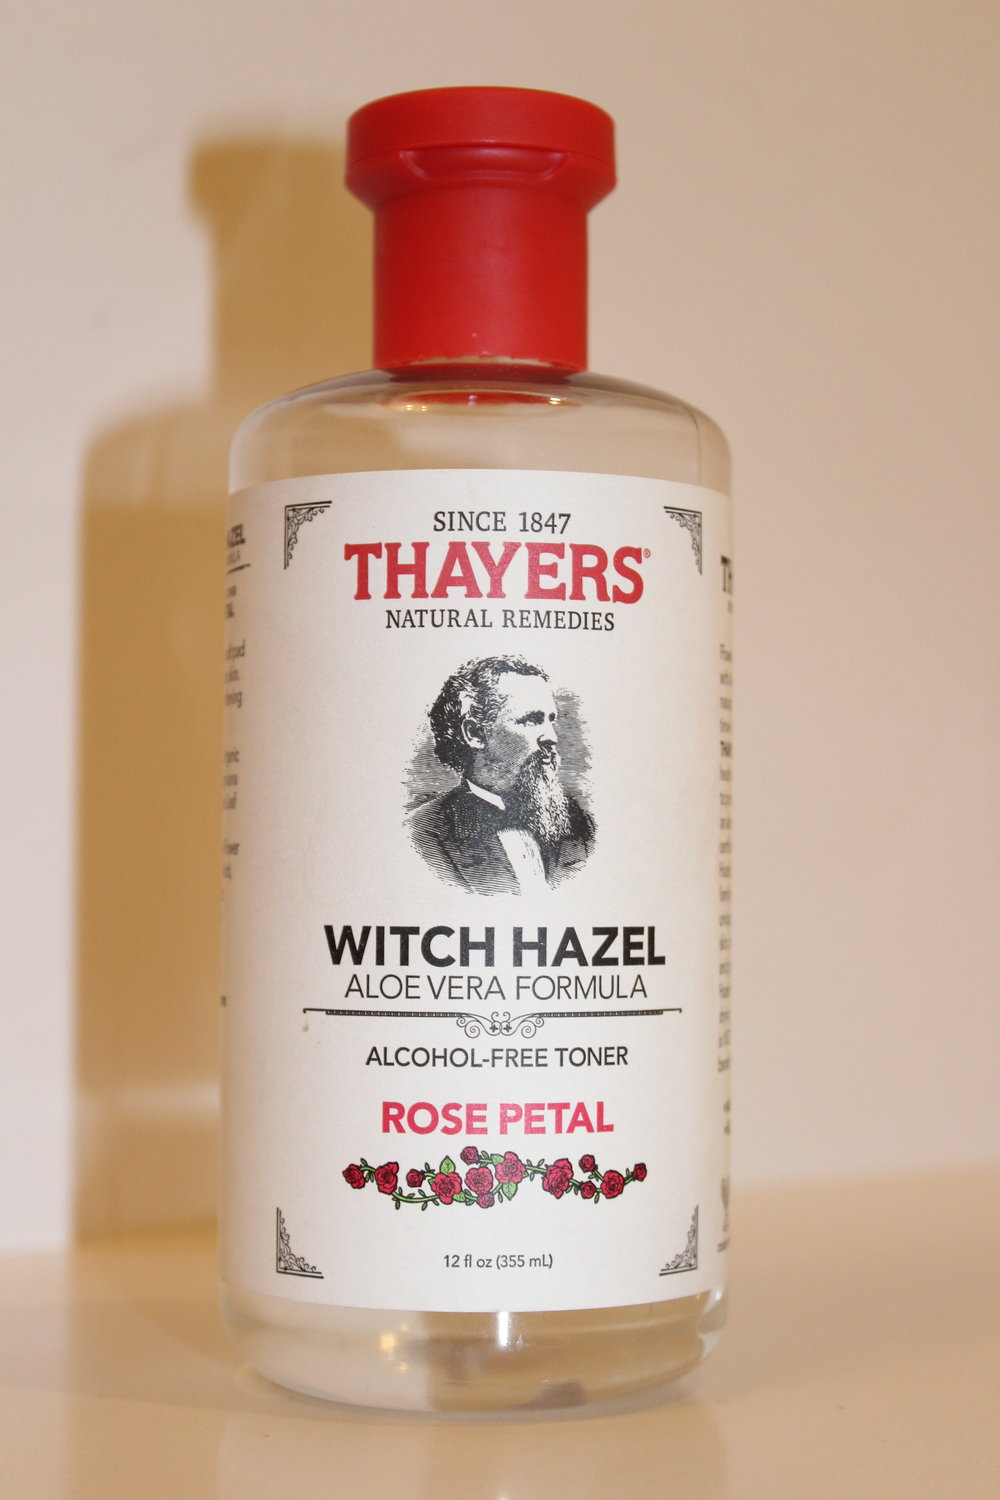 THAYERS WITCH HAAEL TONER - Thayers Witch Hazel Toner is the perfect morning toner to make your face feel fresh and ready for the day, whether or not you put on makeup. It is natural, which I love, and super effective. It helps with redness, acne, and overall texture.